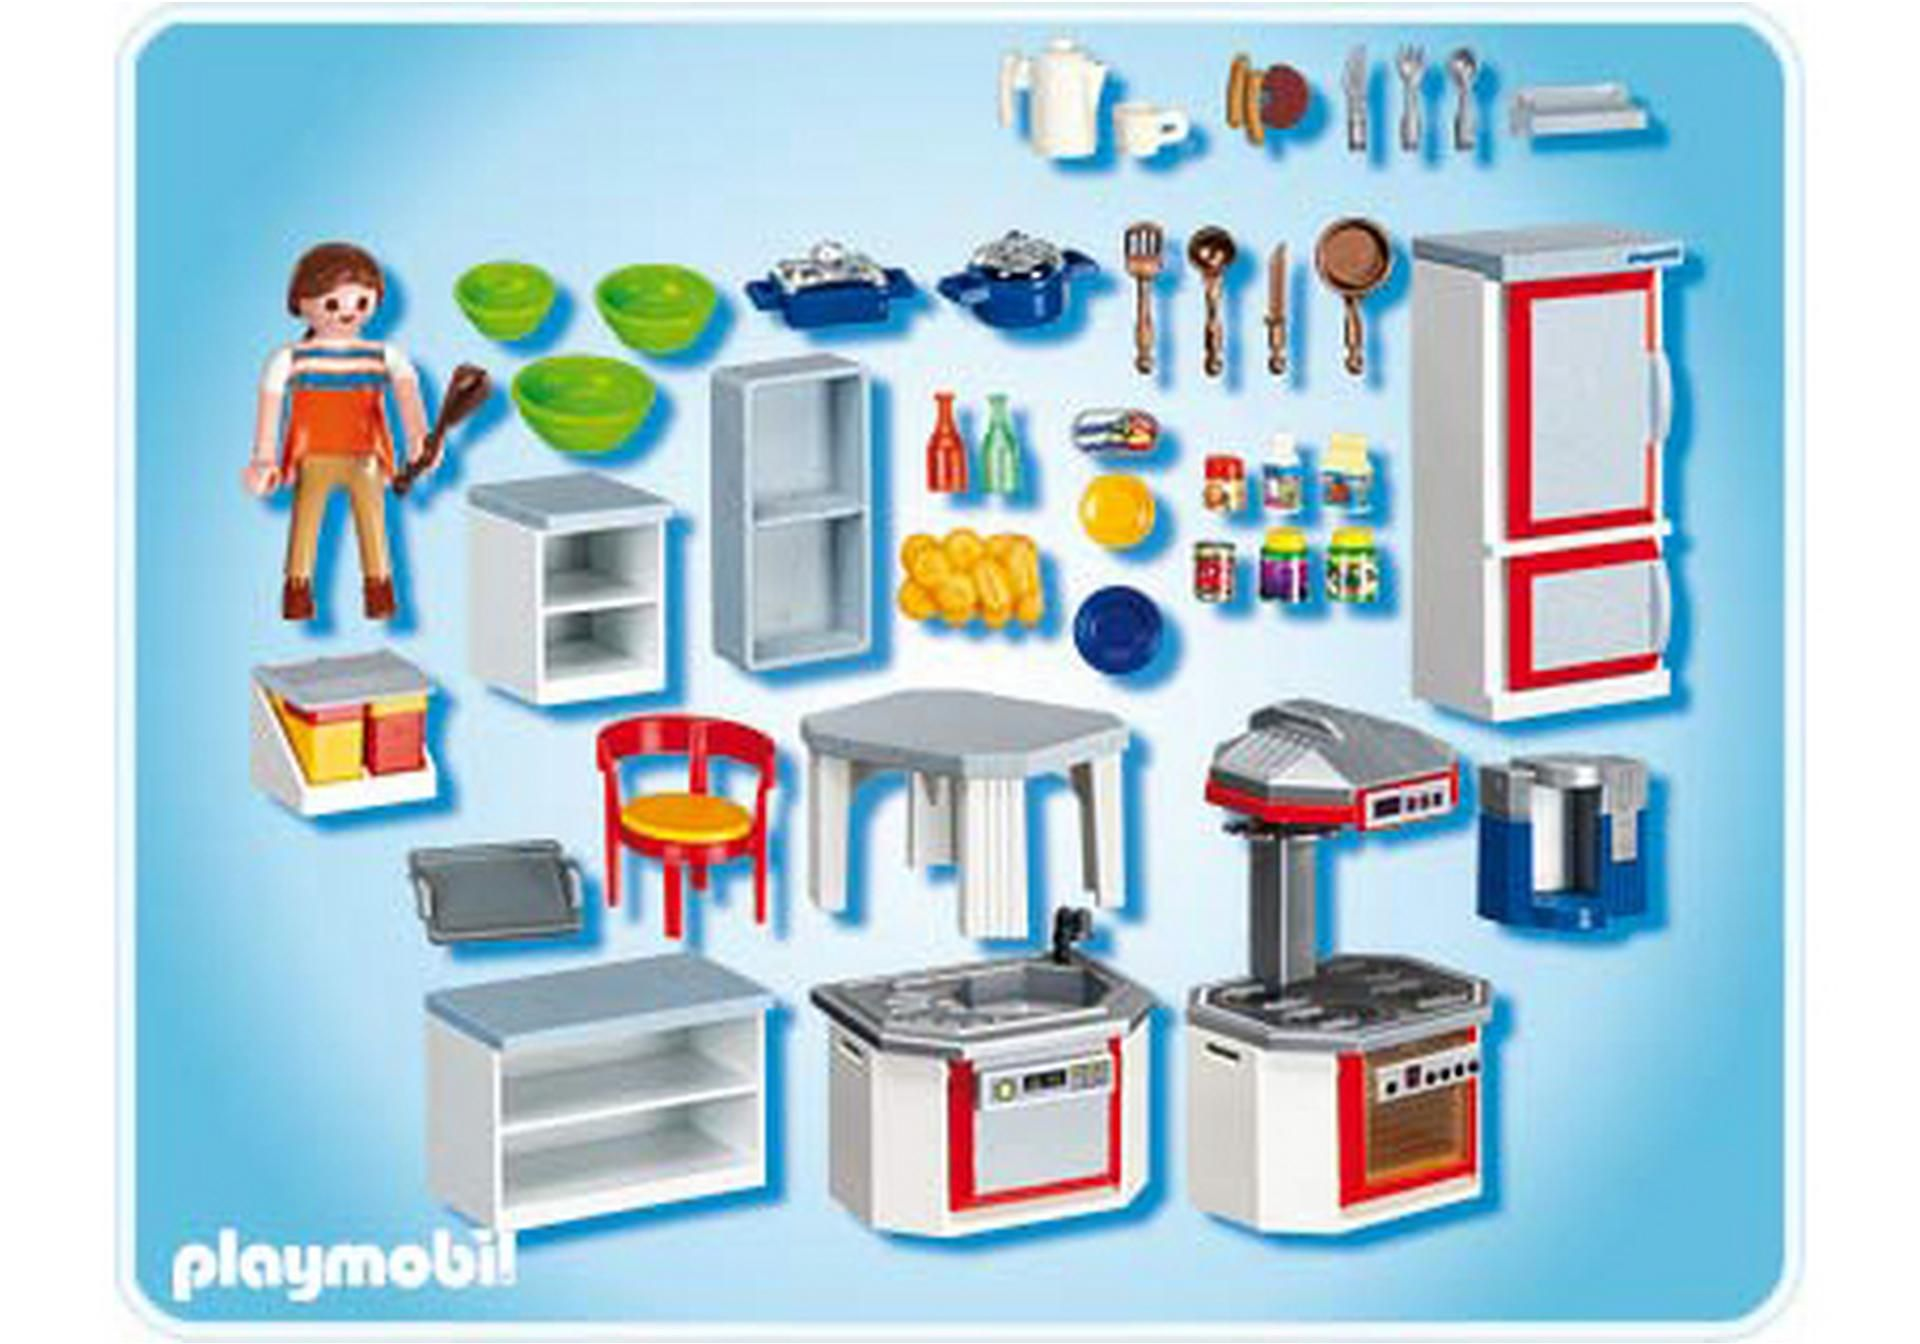 Amazing Playmobil Kitchen Set In 2020 Playmobil Toys Playmobil Kitchen Sets